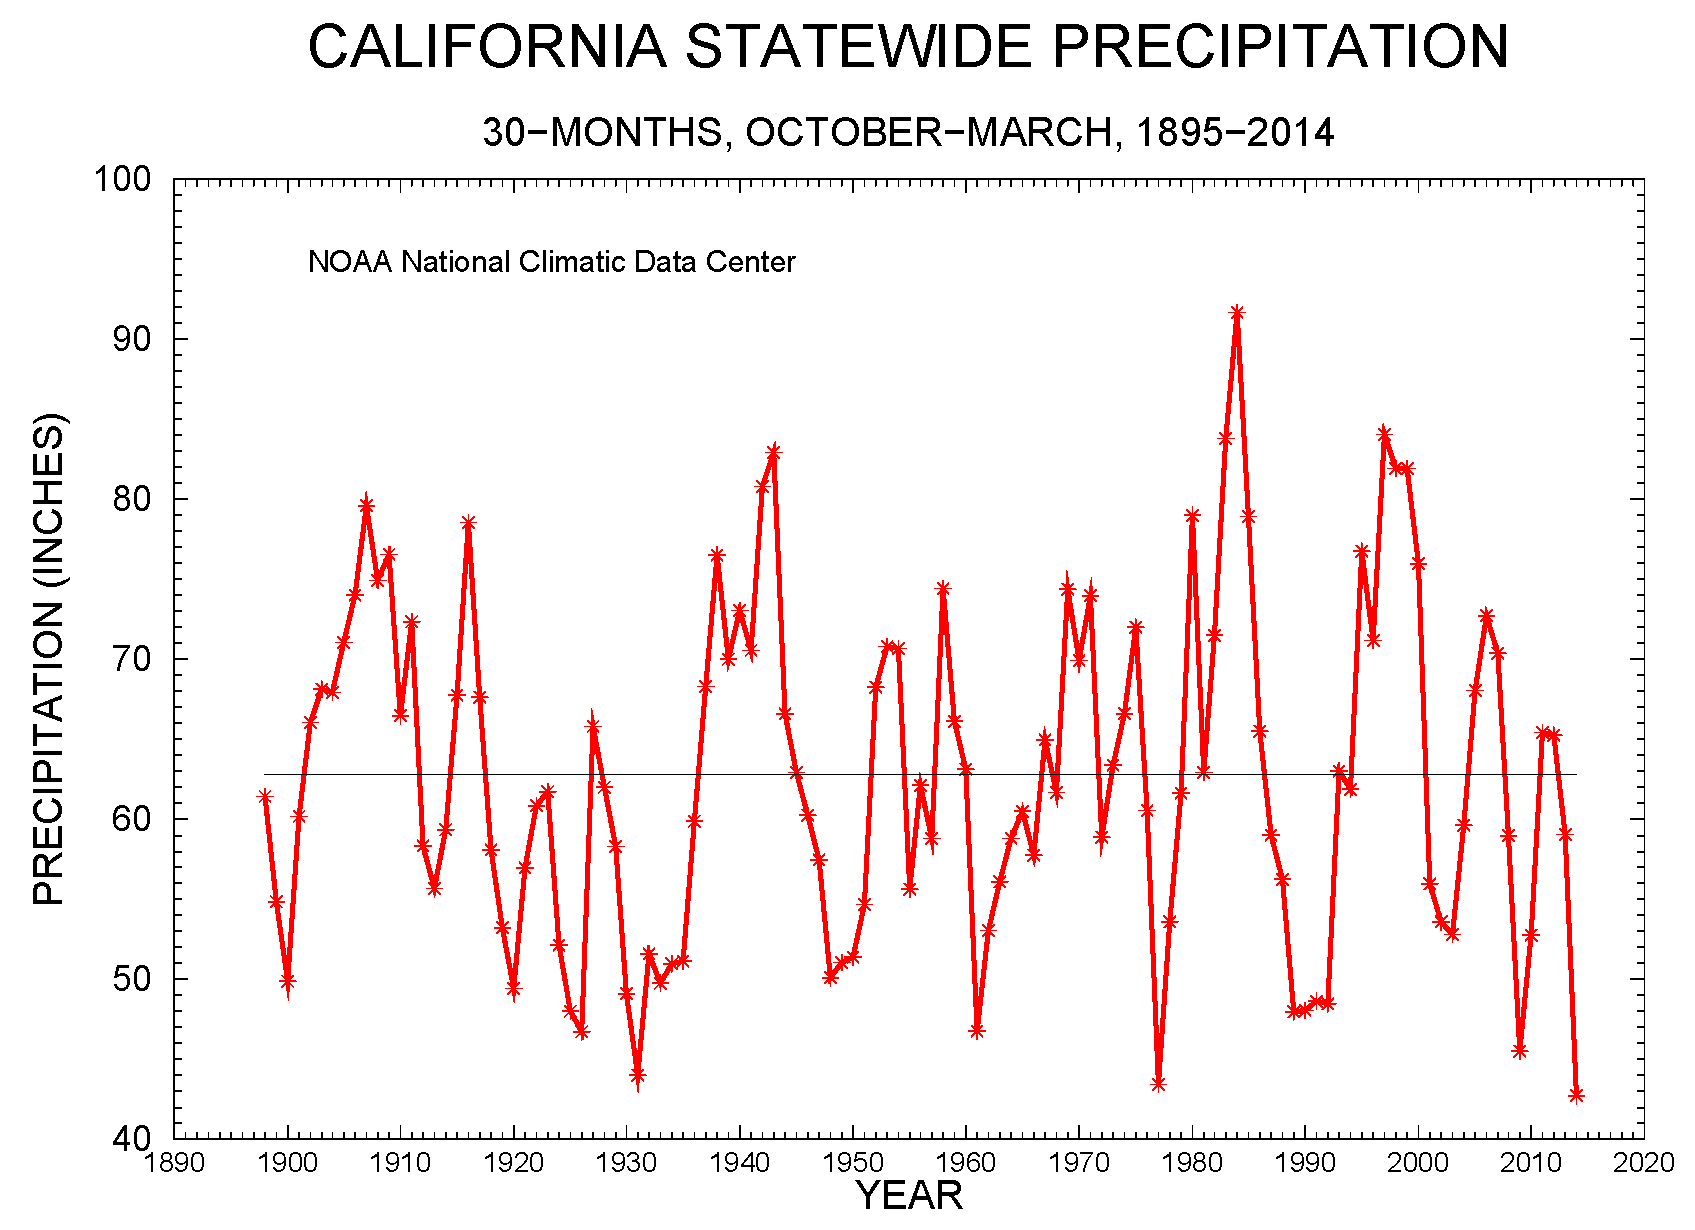 California statewide precipitation, 30-month periods October-March, 1895-2014